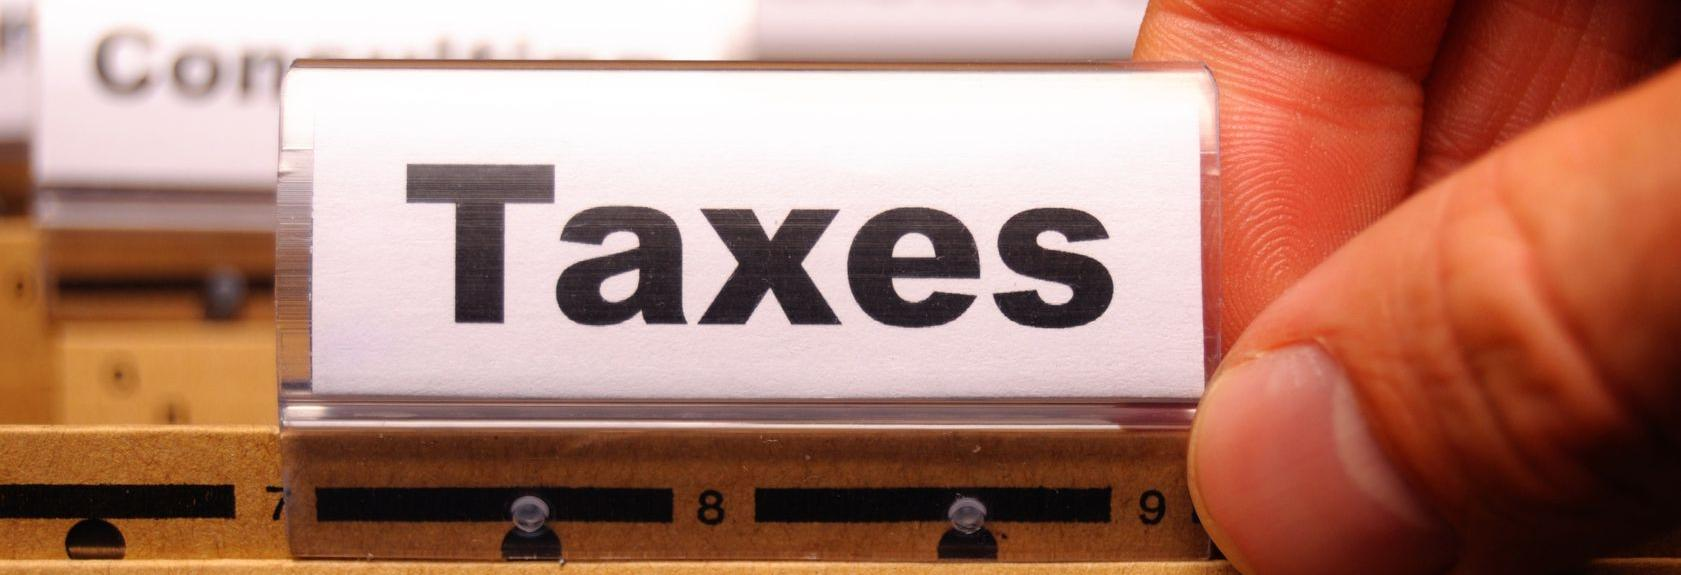 yeager & altieri certified public accountants huntington beach ca tax help coupons near me